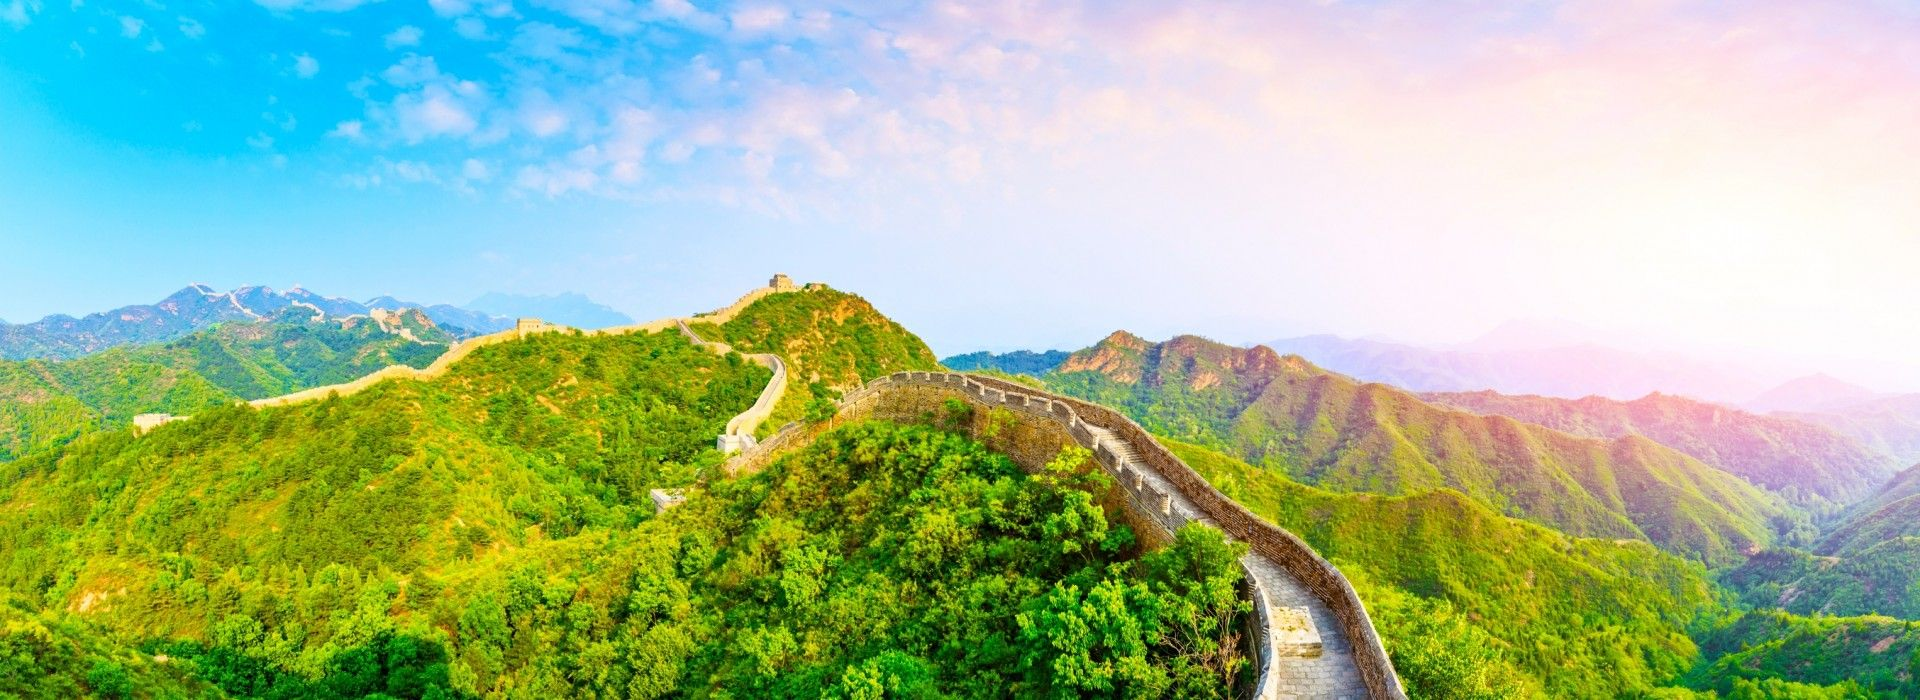 Cultural, religious and historic sites Tours in Great Wall of China